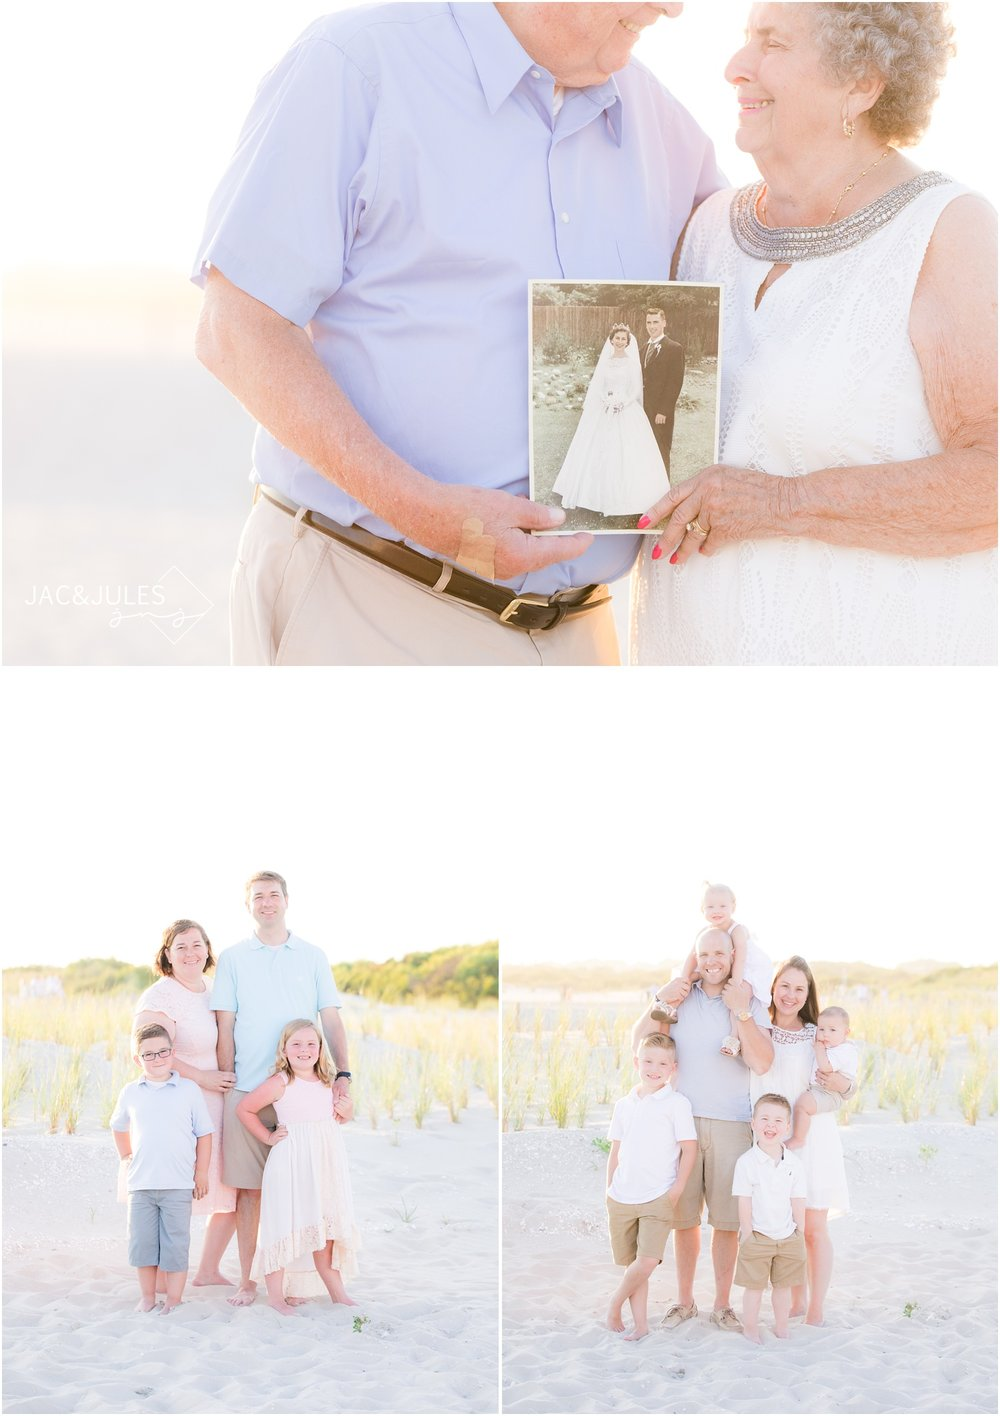 Grandparents anniversary photos on the beach in Cape May, NJ